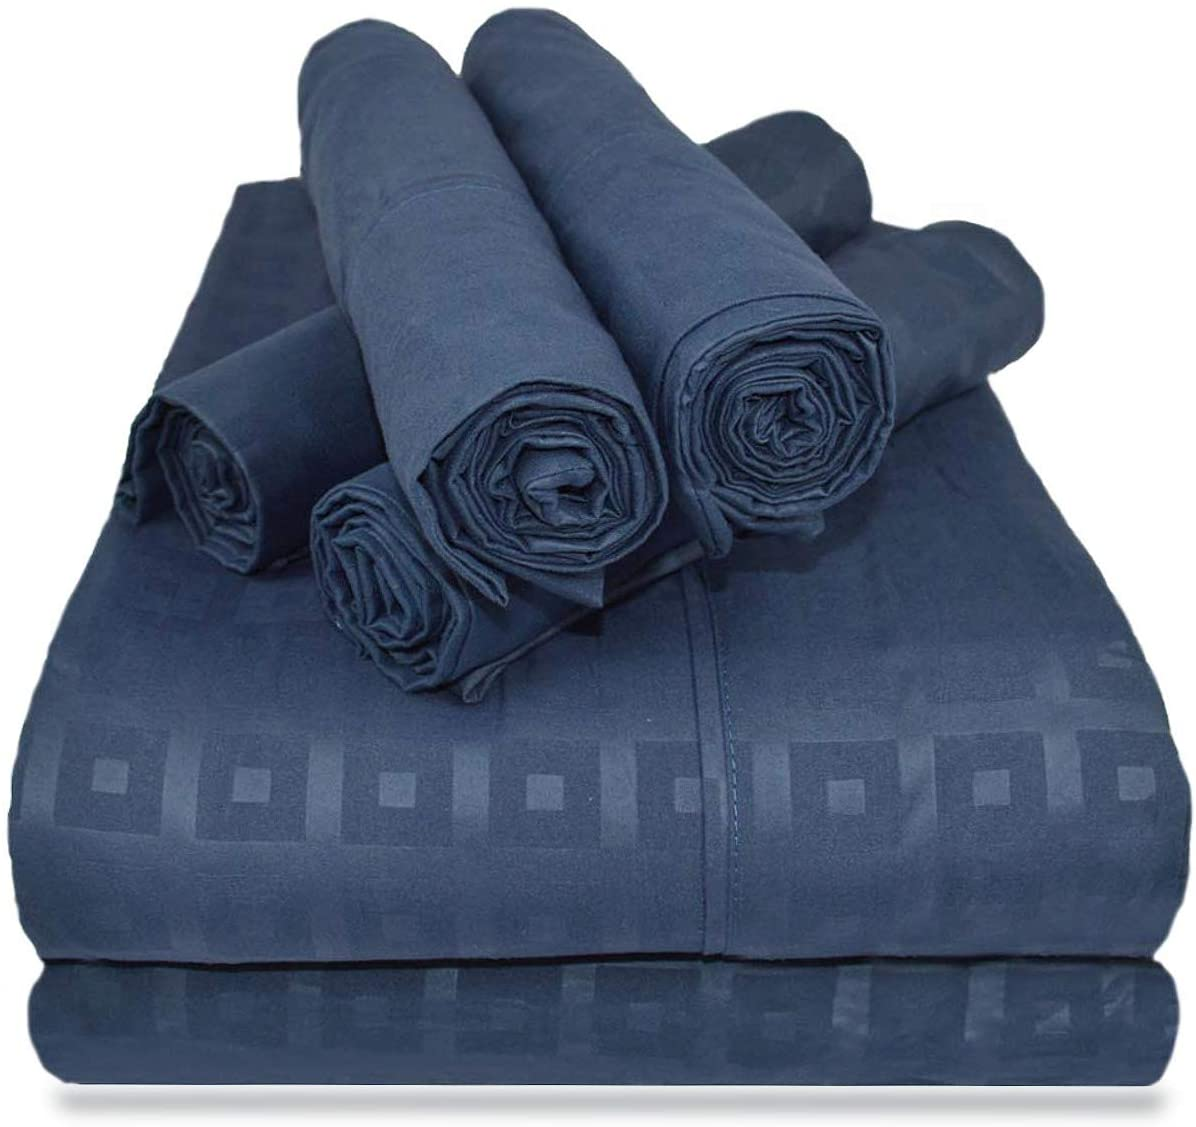 Victoria Valenti Embossed Sheet Set with 4 Pillow Cases, Double Brushed and Ultra Soft with Deep Pockets for Extra Deep Mattress, Microfiber, Hypoallergenic Queen Navy